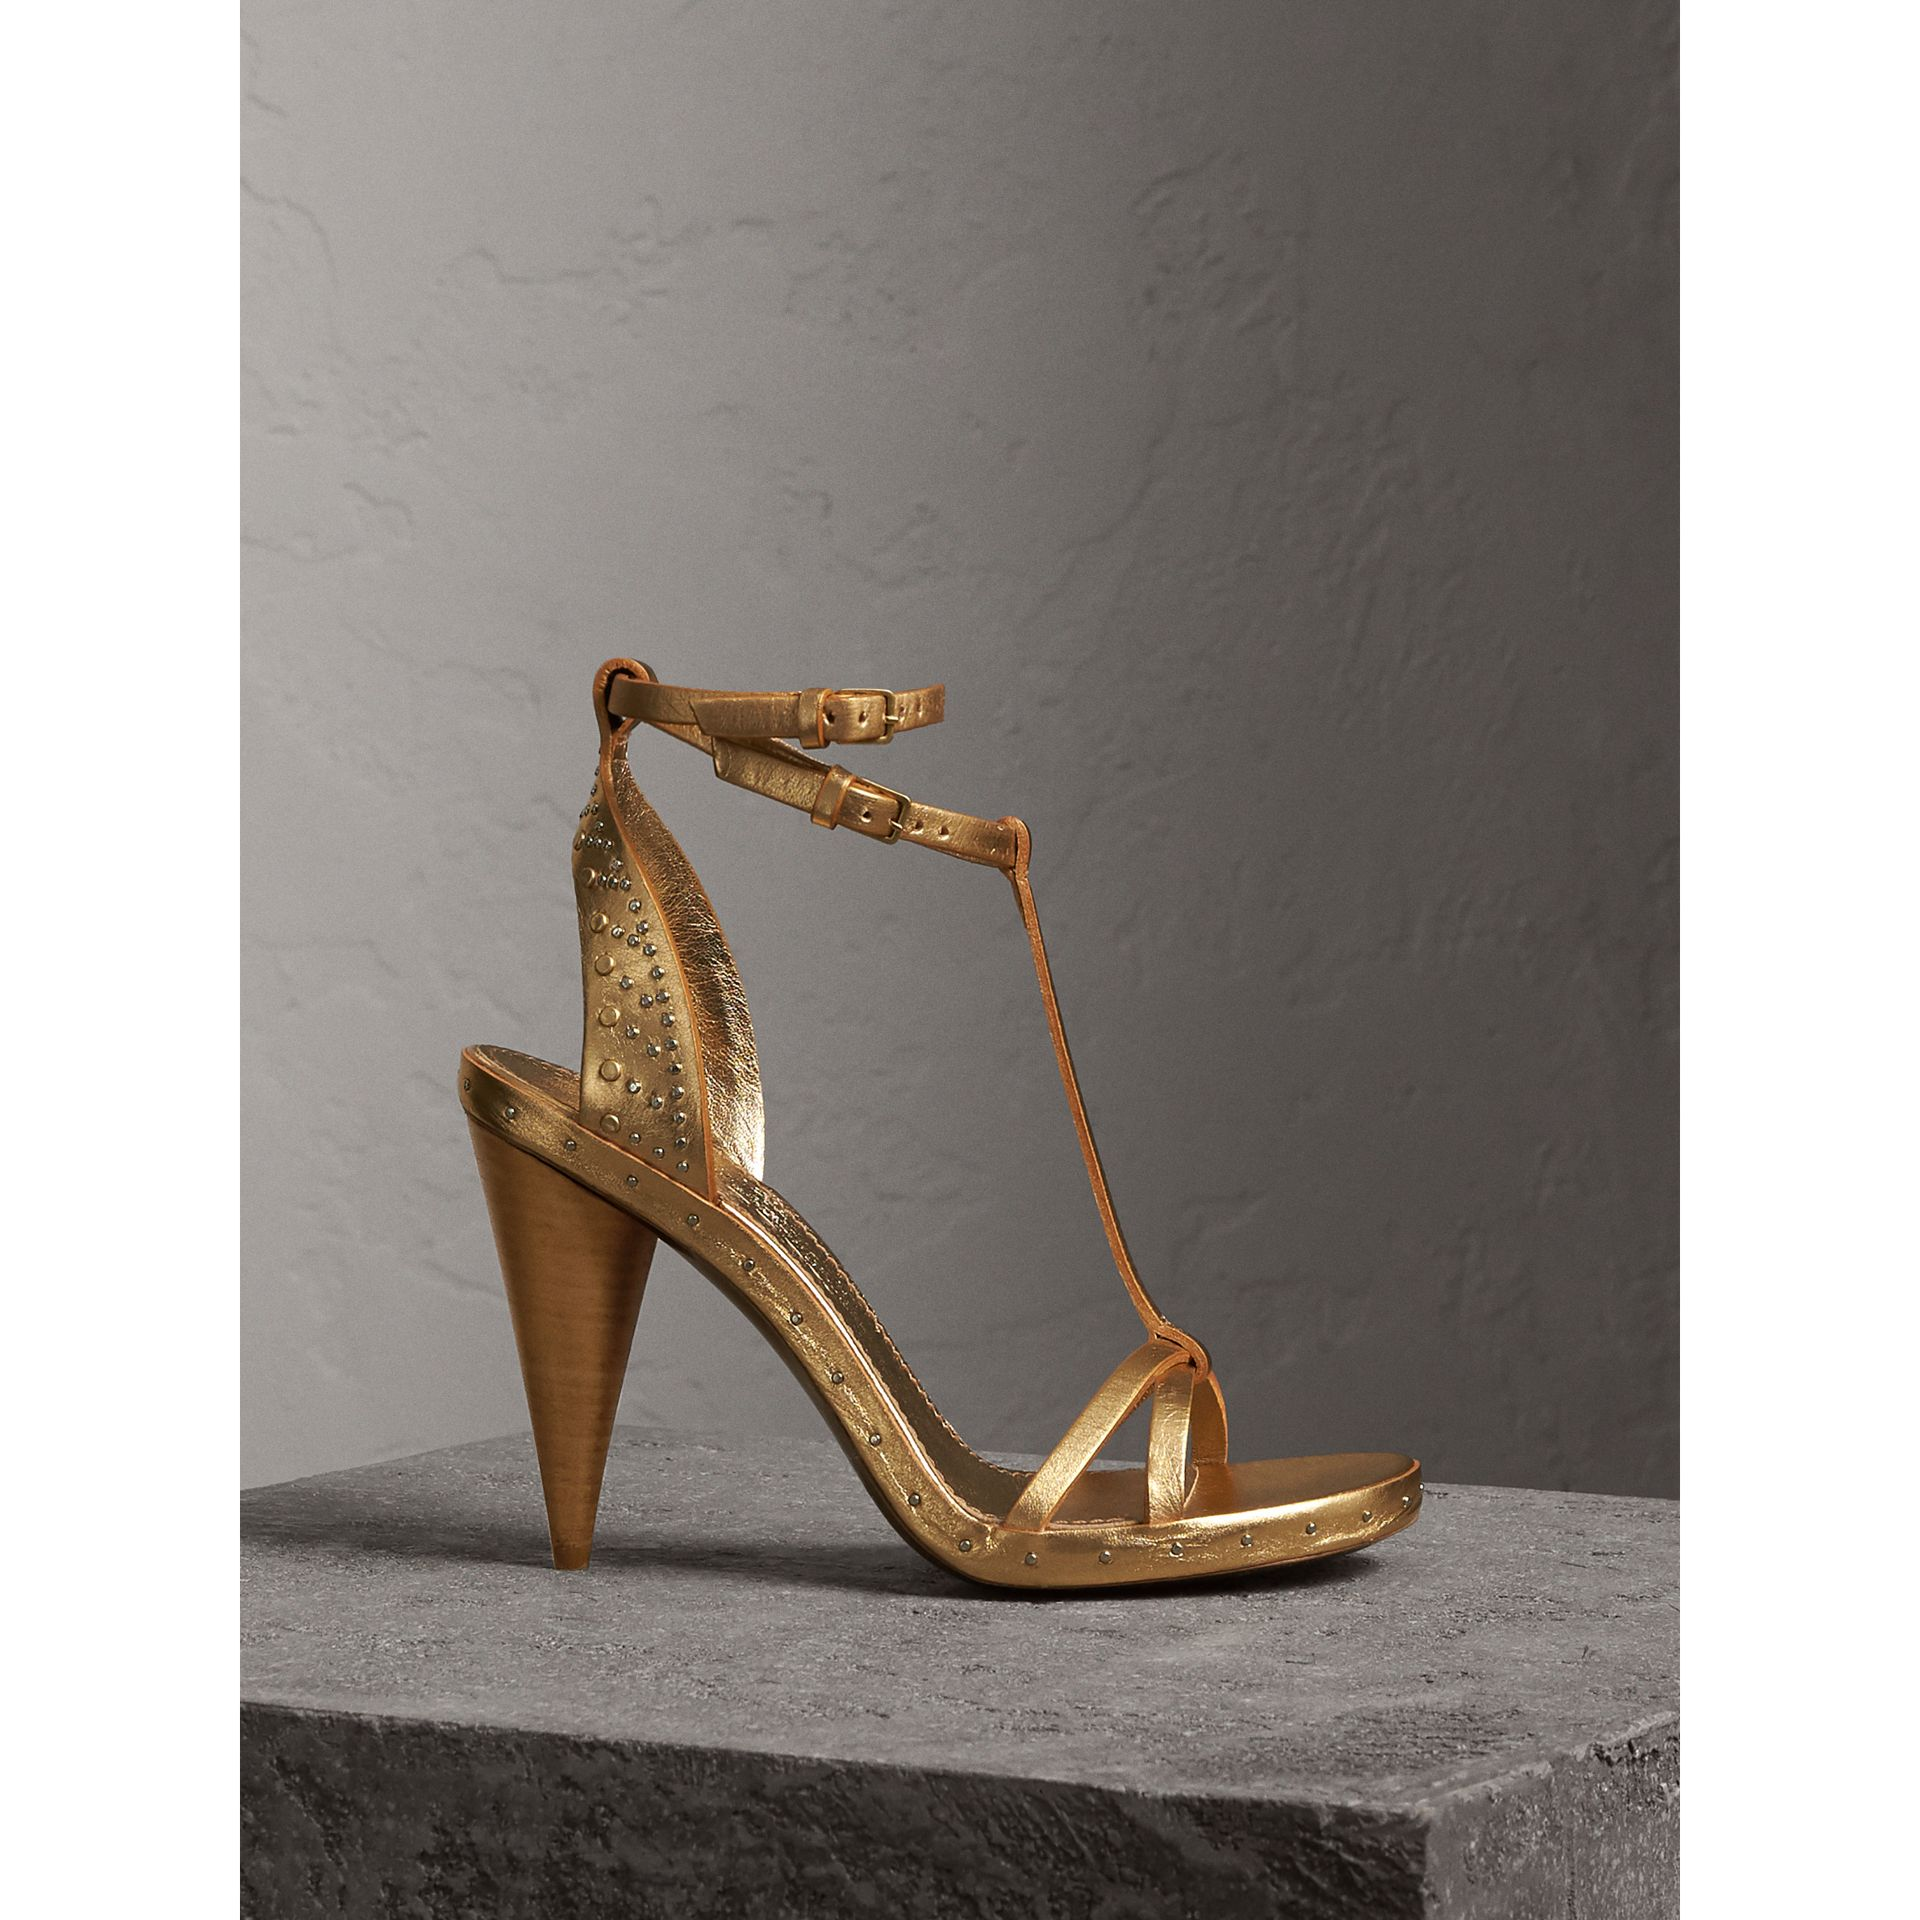 Riveted Metallic Leather High Cone-heel Sandals in Gold | Burberry Australia - gallery image 0